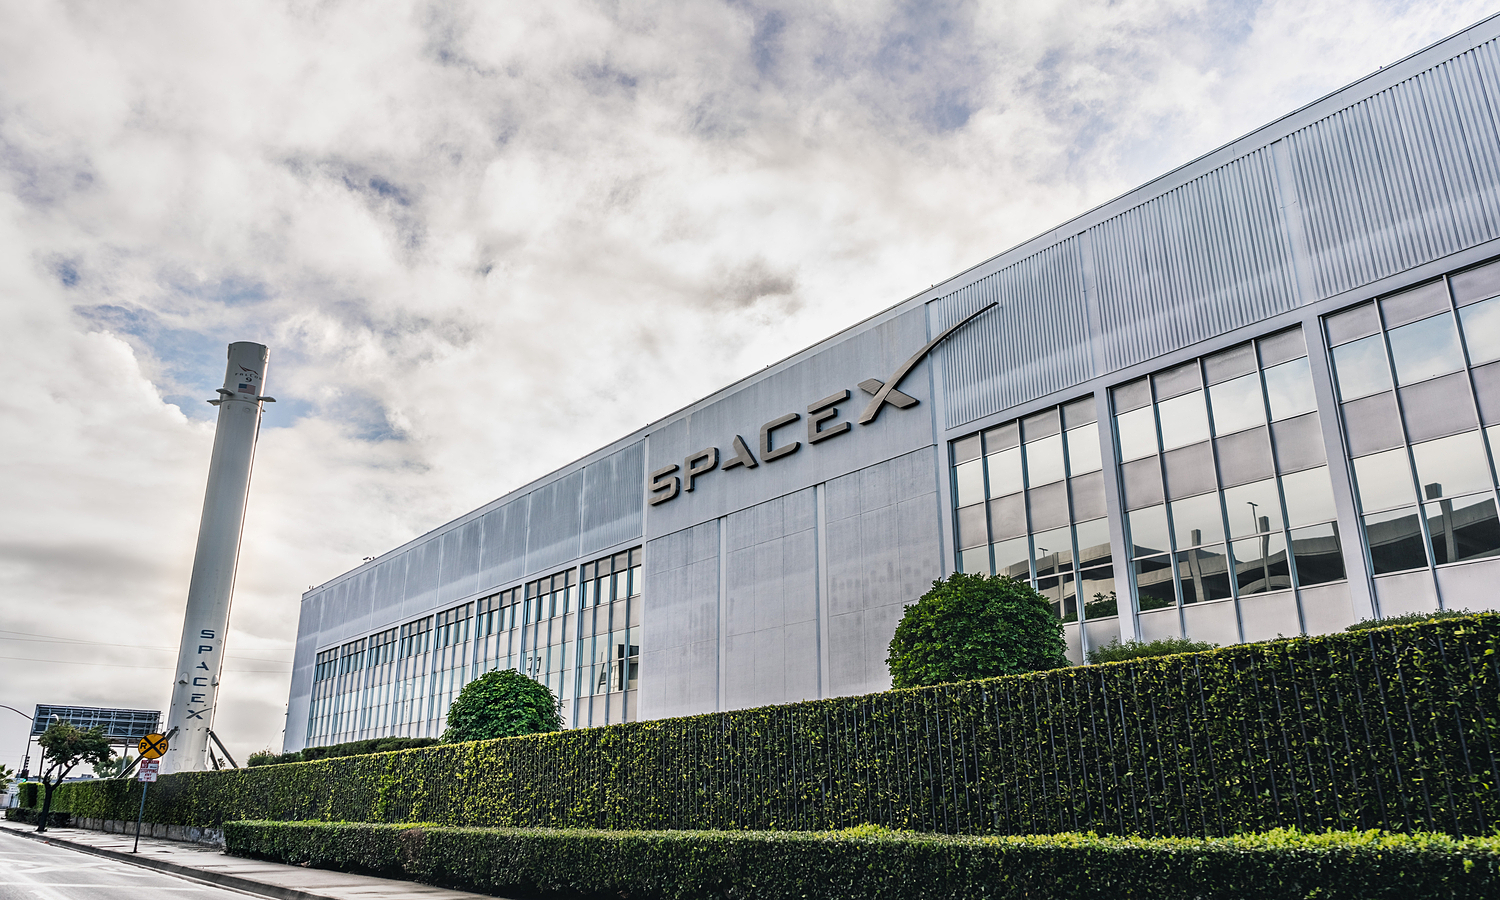 SpaceX headquarter in Hawthorne, California, the U.S. Photo by Shutterstock/Sundry Photography.